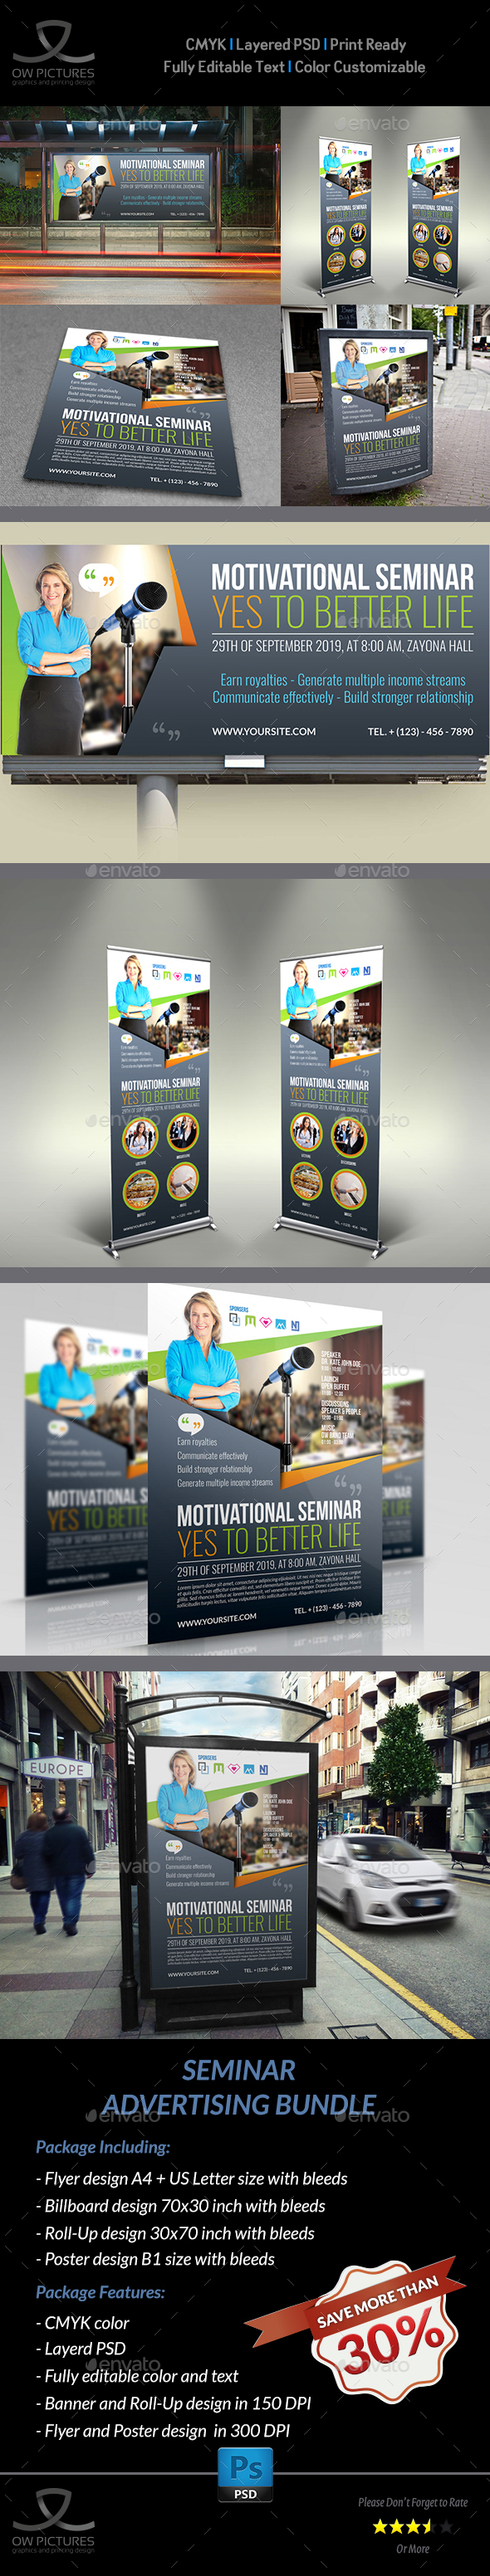 GraphicRiver Seminar Advertising Bundle 20876660